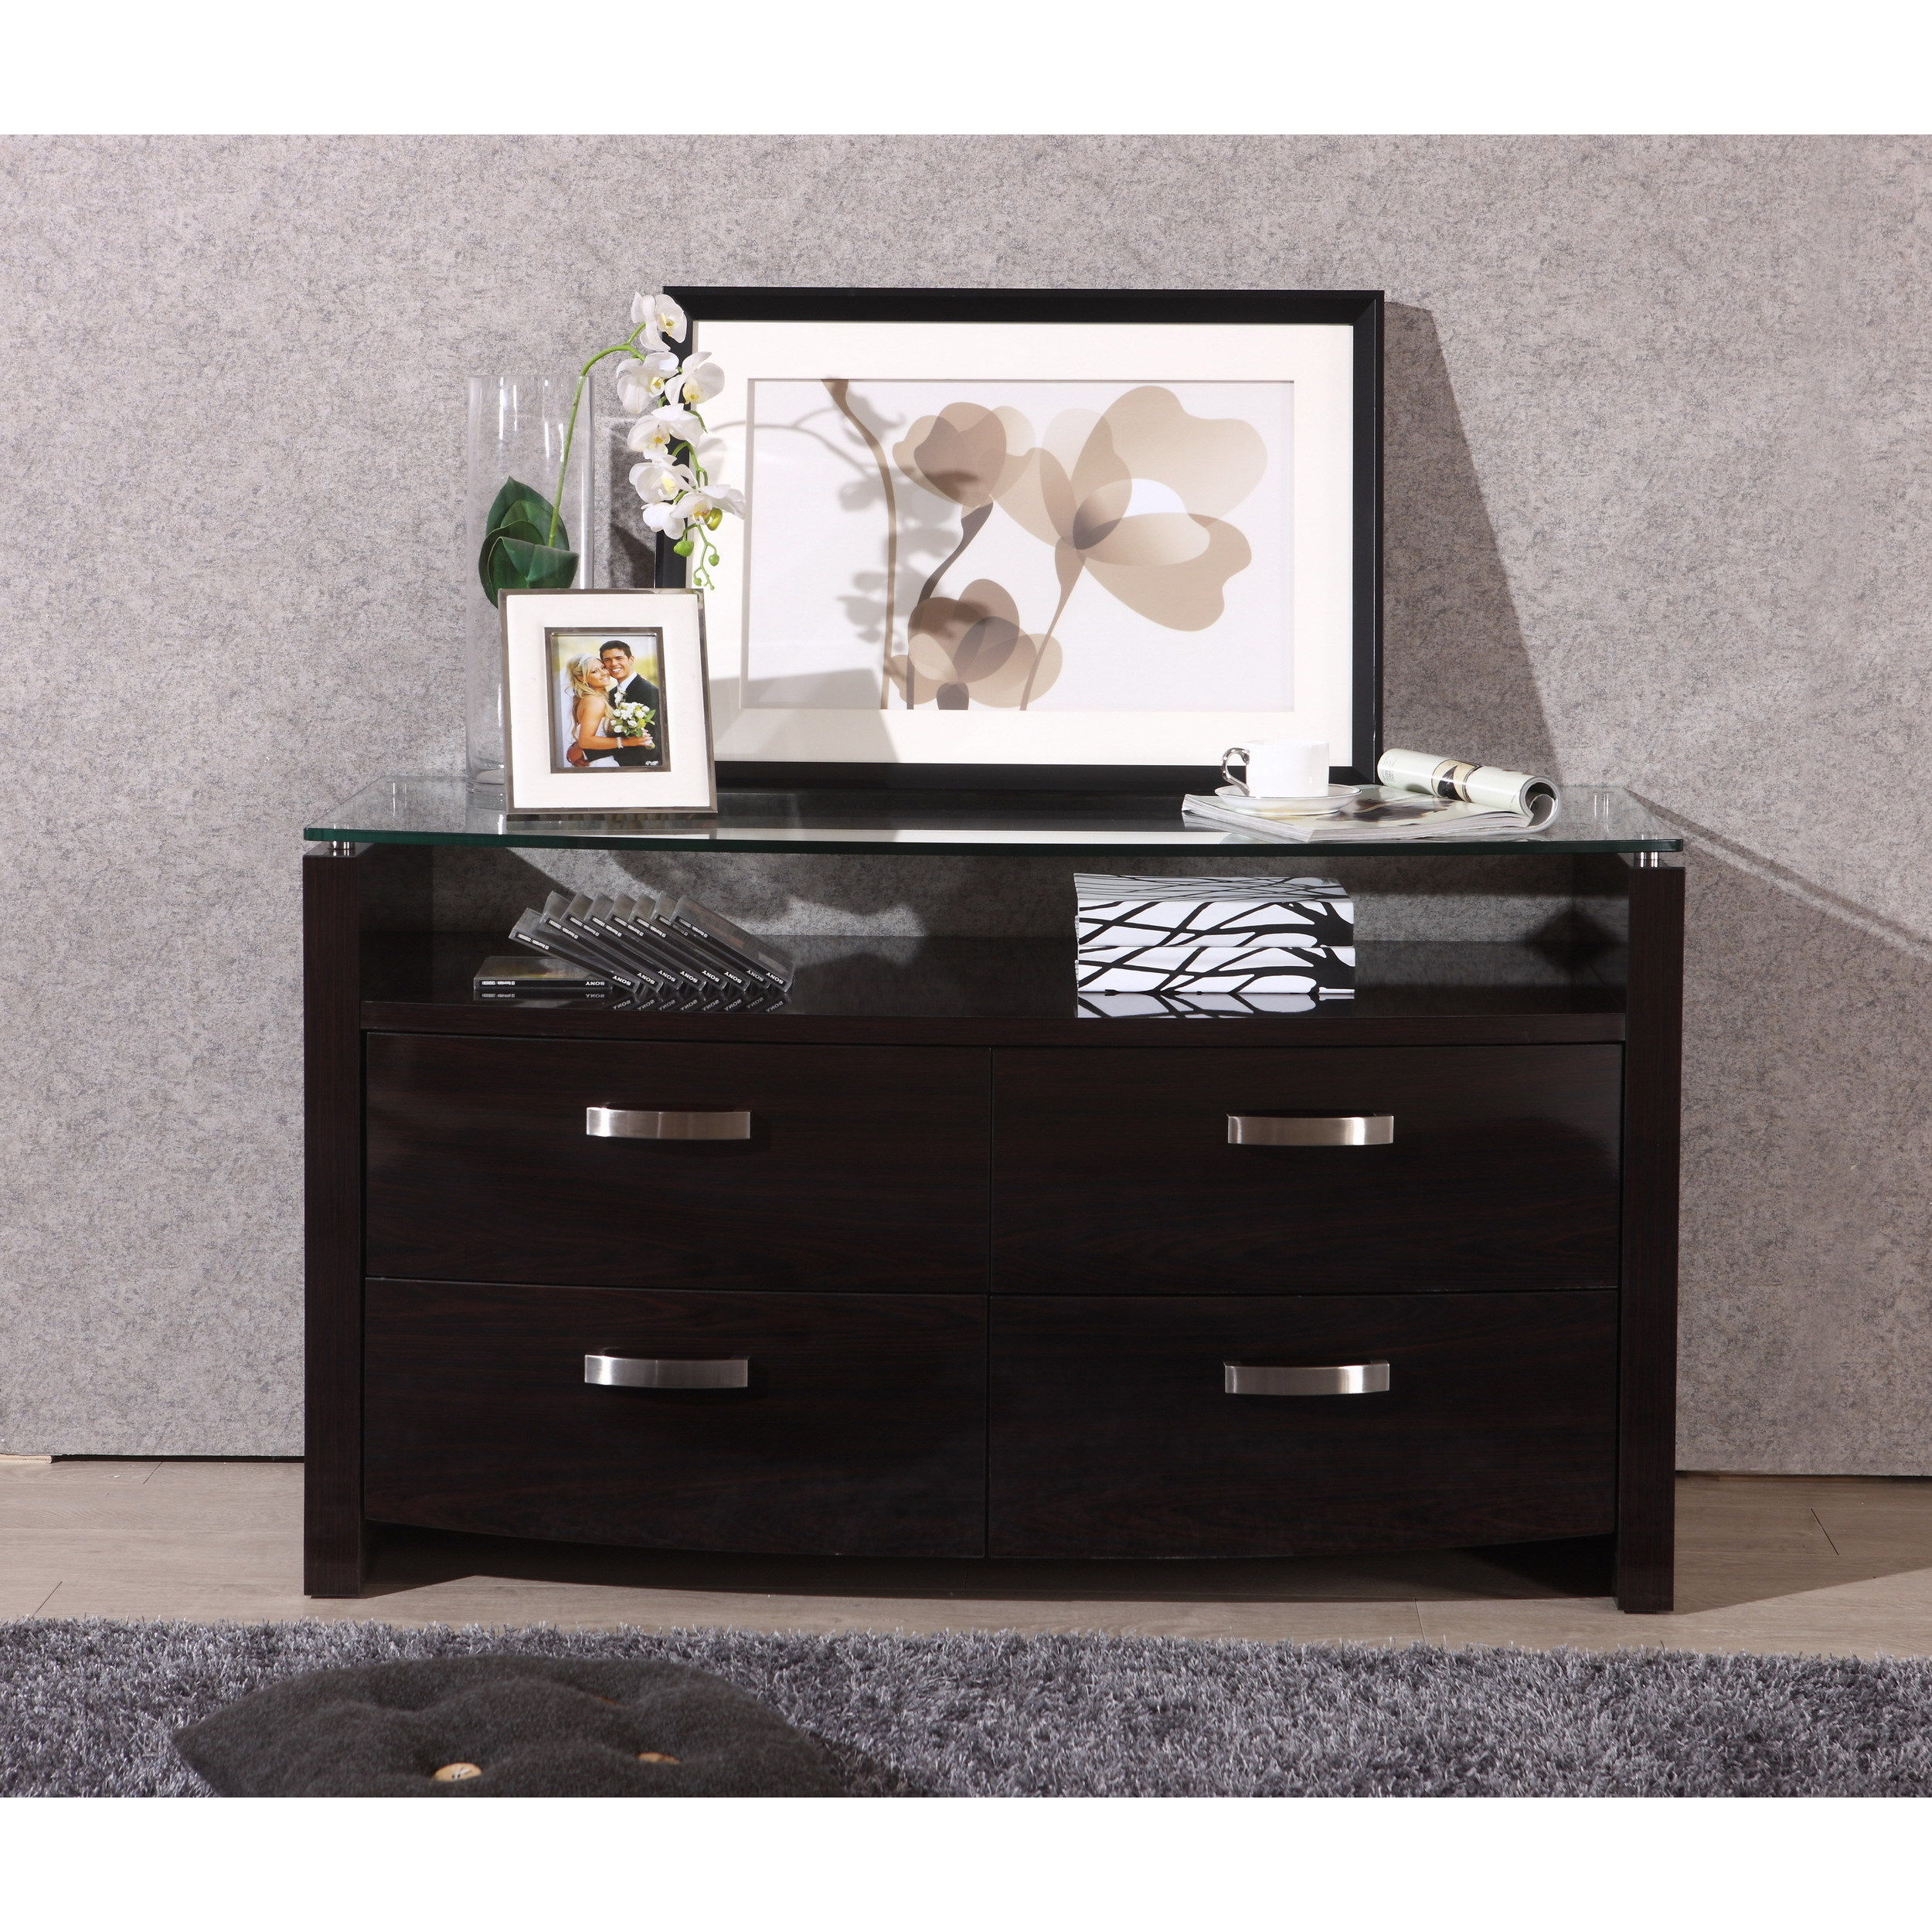 Shop Domino Espresso Glass Top Tv Stand Free Shipping Today